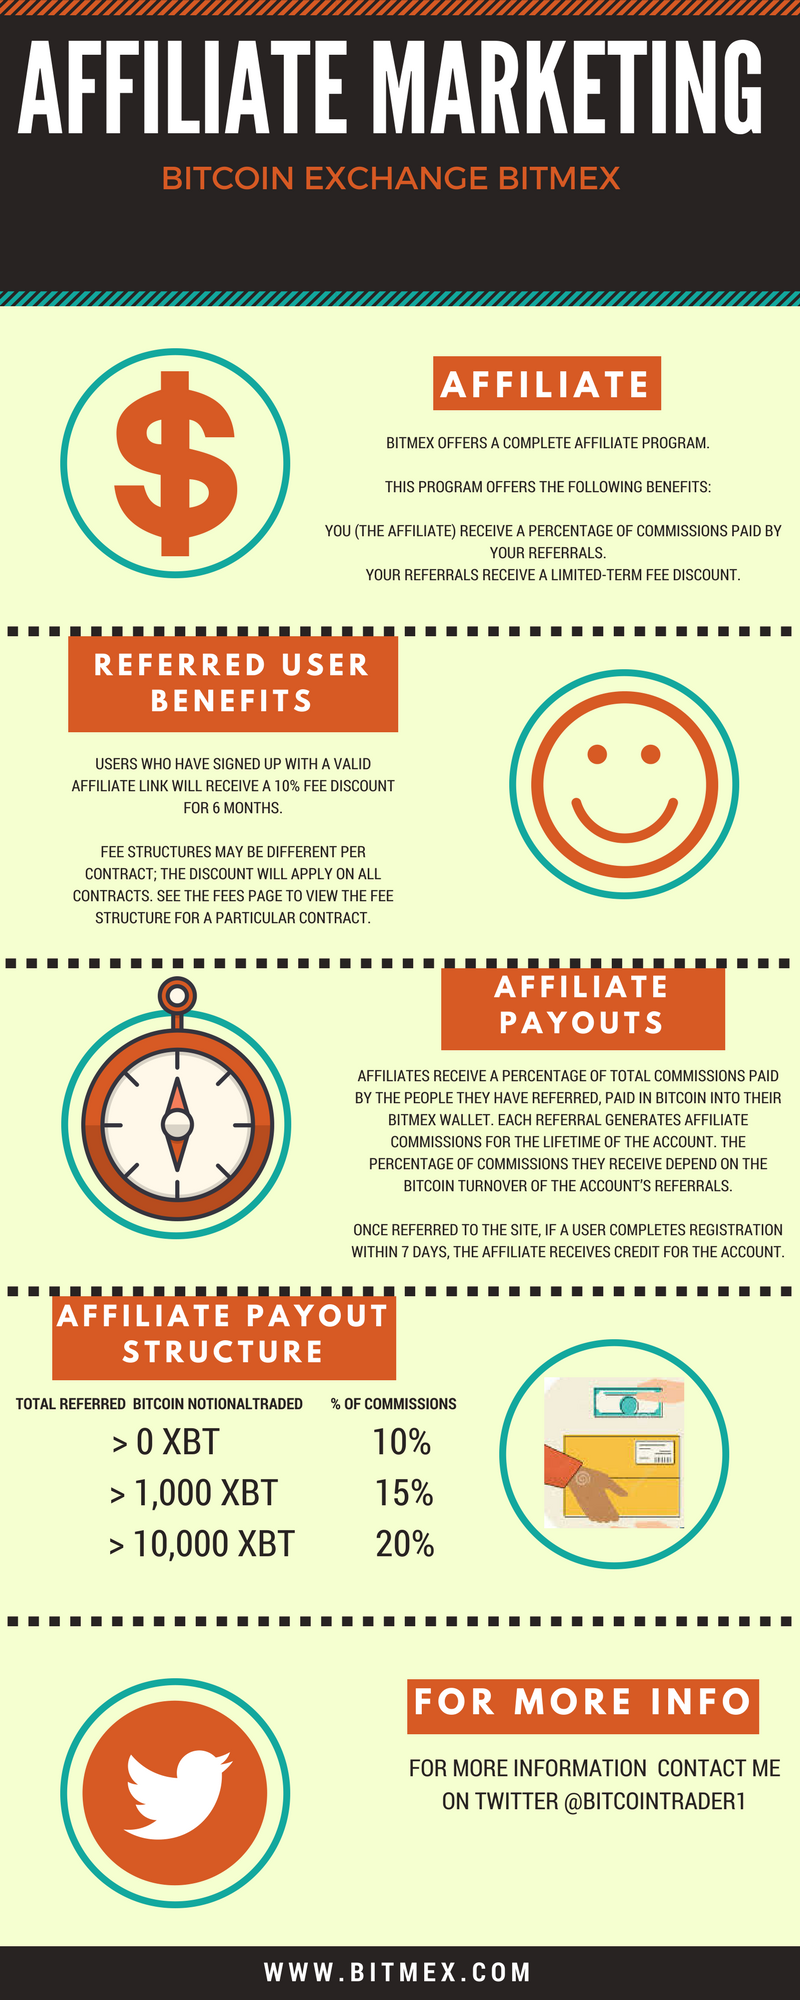 infographic are in the affiliate marketing business why not try